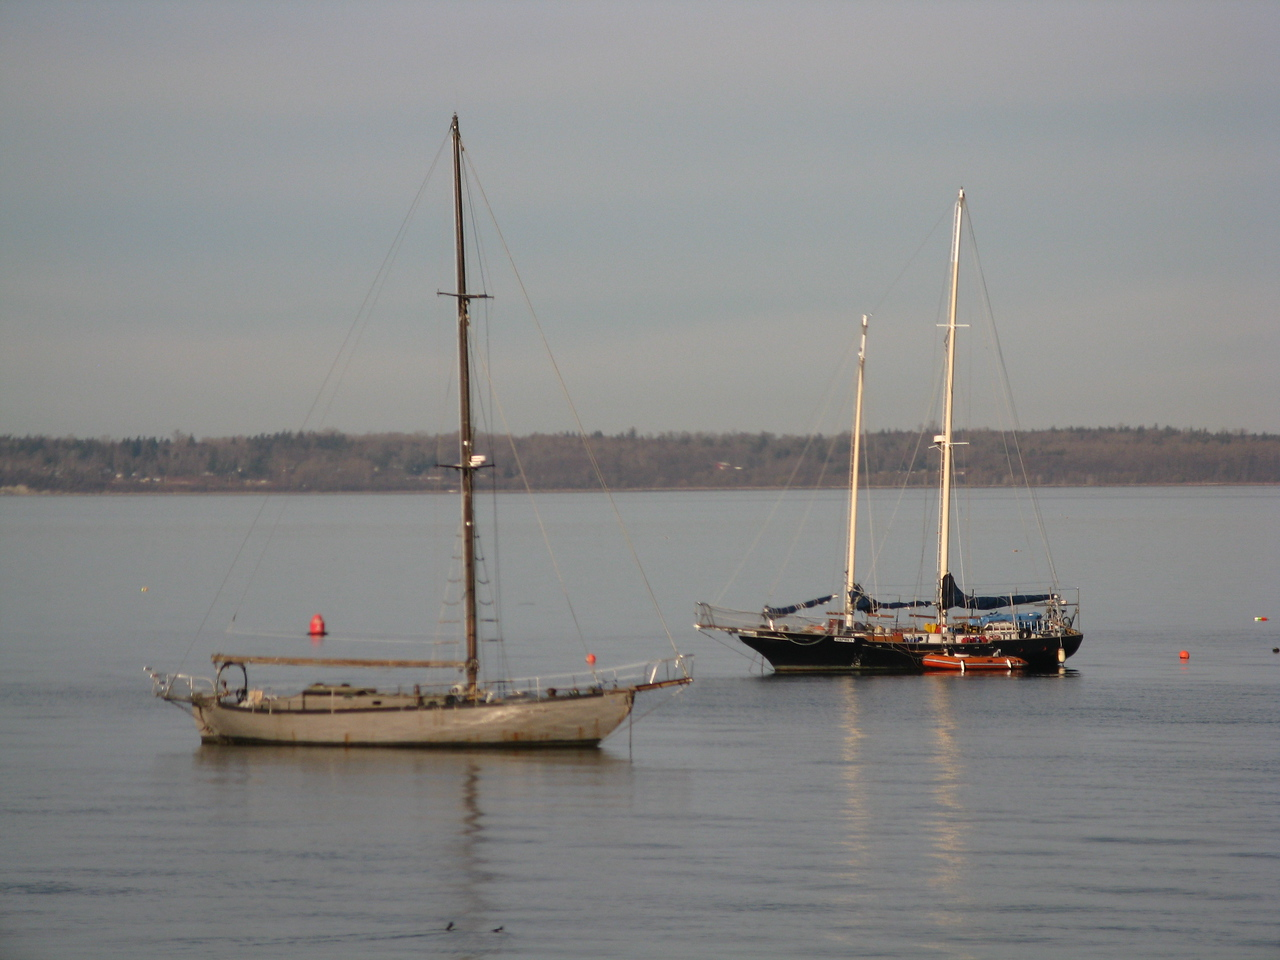 Two large sailboats, including the twin-masted ketch, near Bellingham.